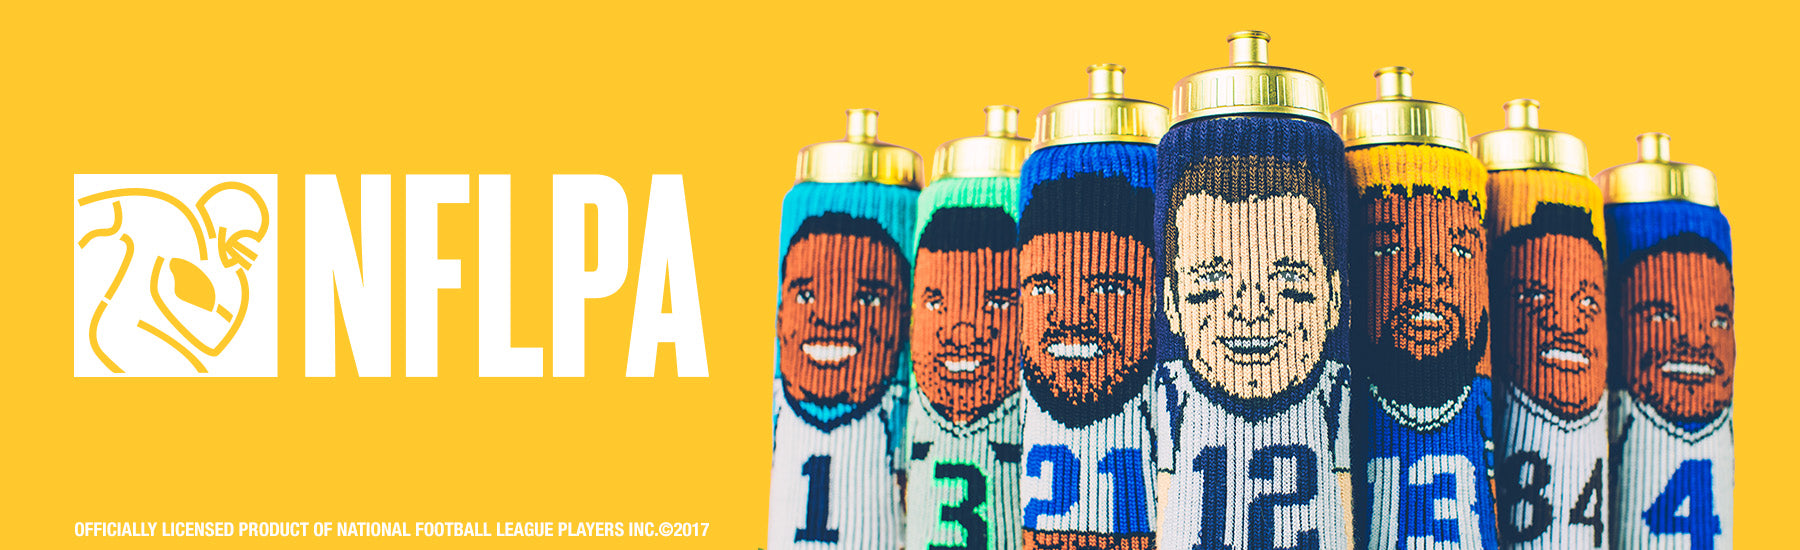 Shop our NFLPA collection